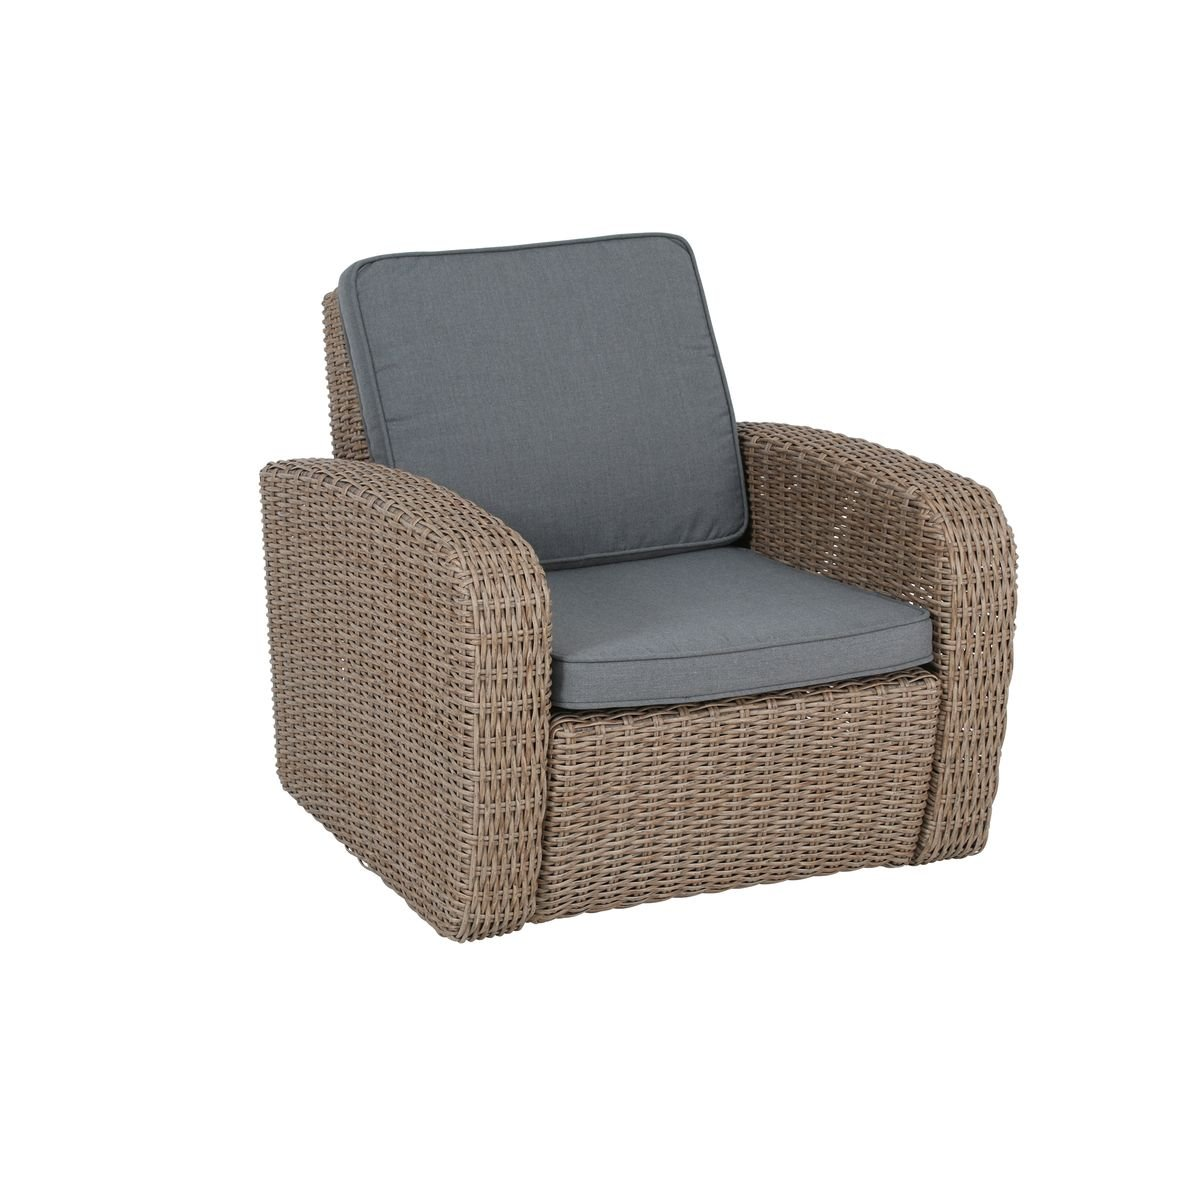 Greemotion rattansessel new york loungesessel mit for Greemotion gartenmobel